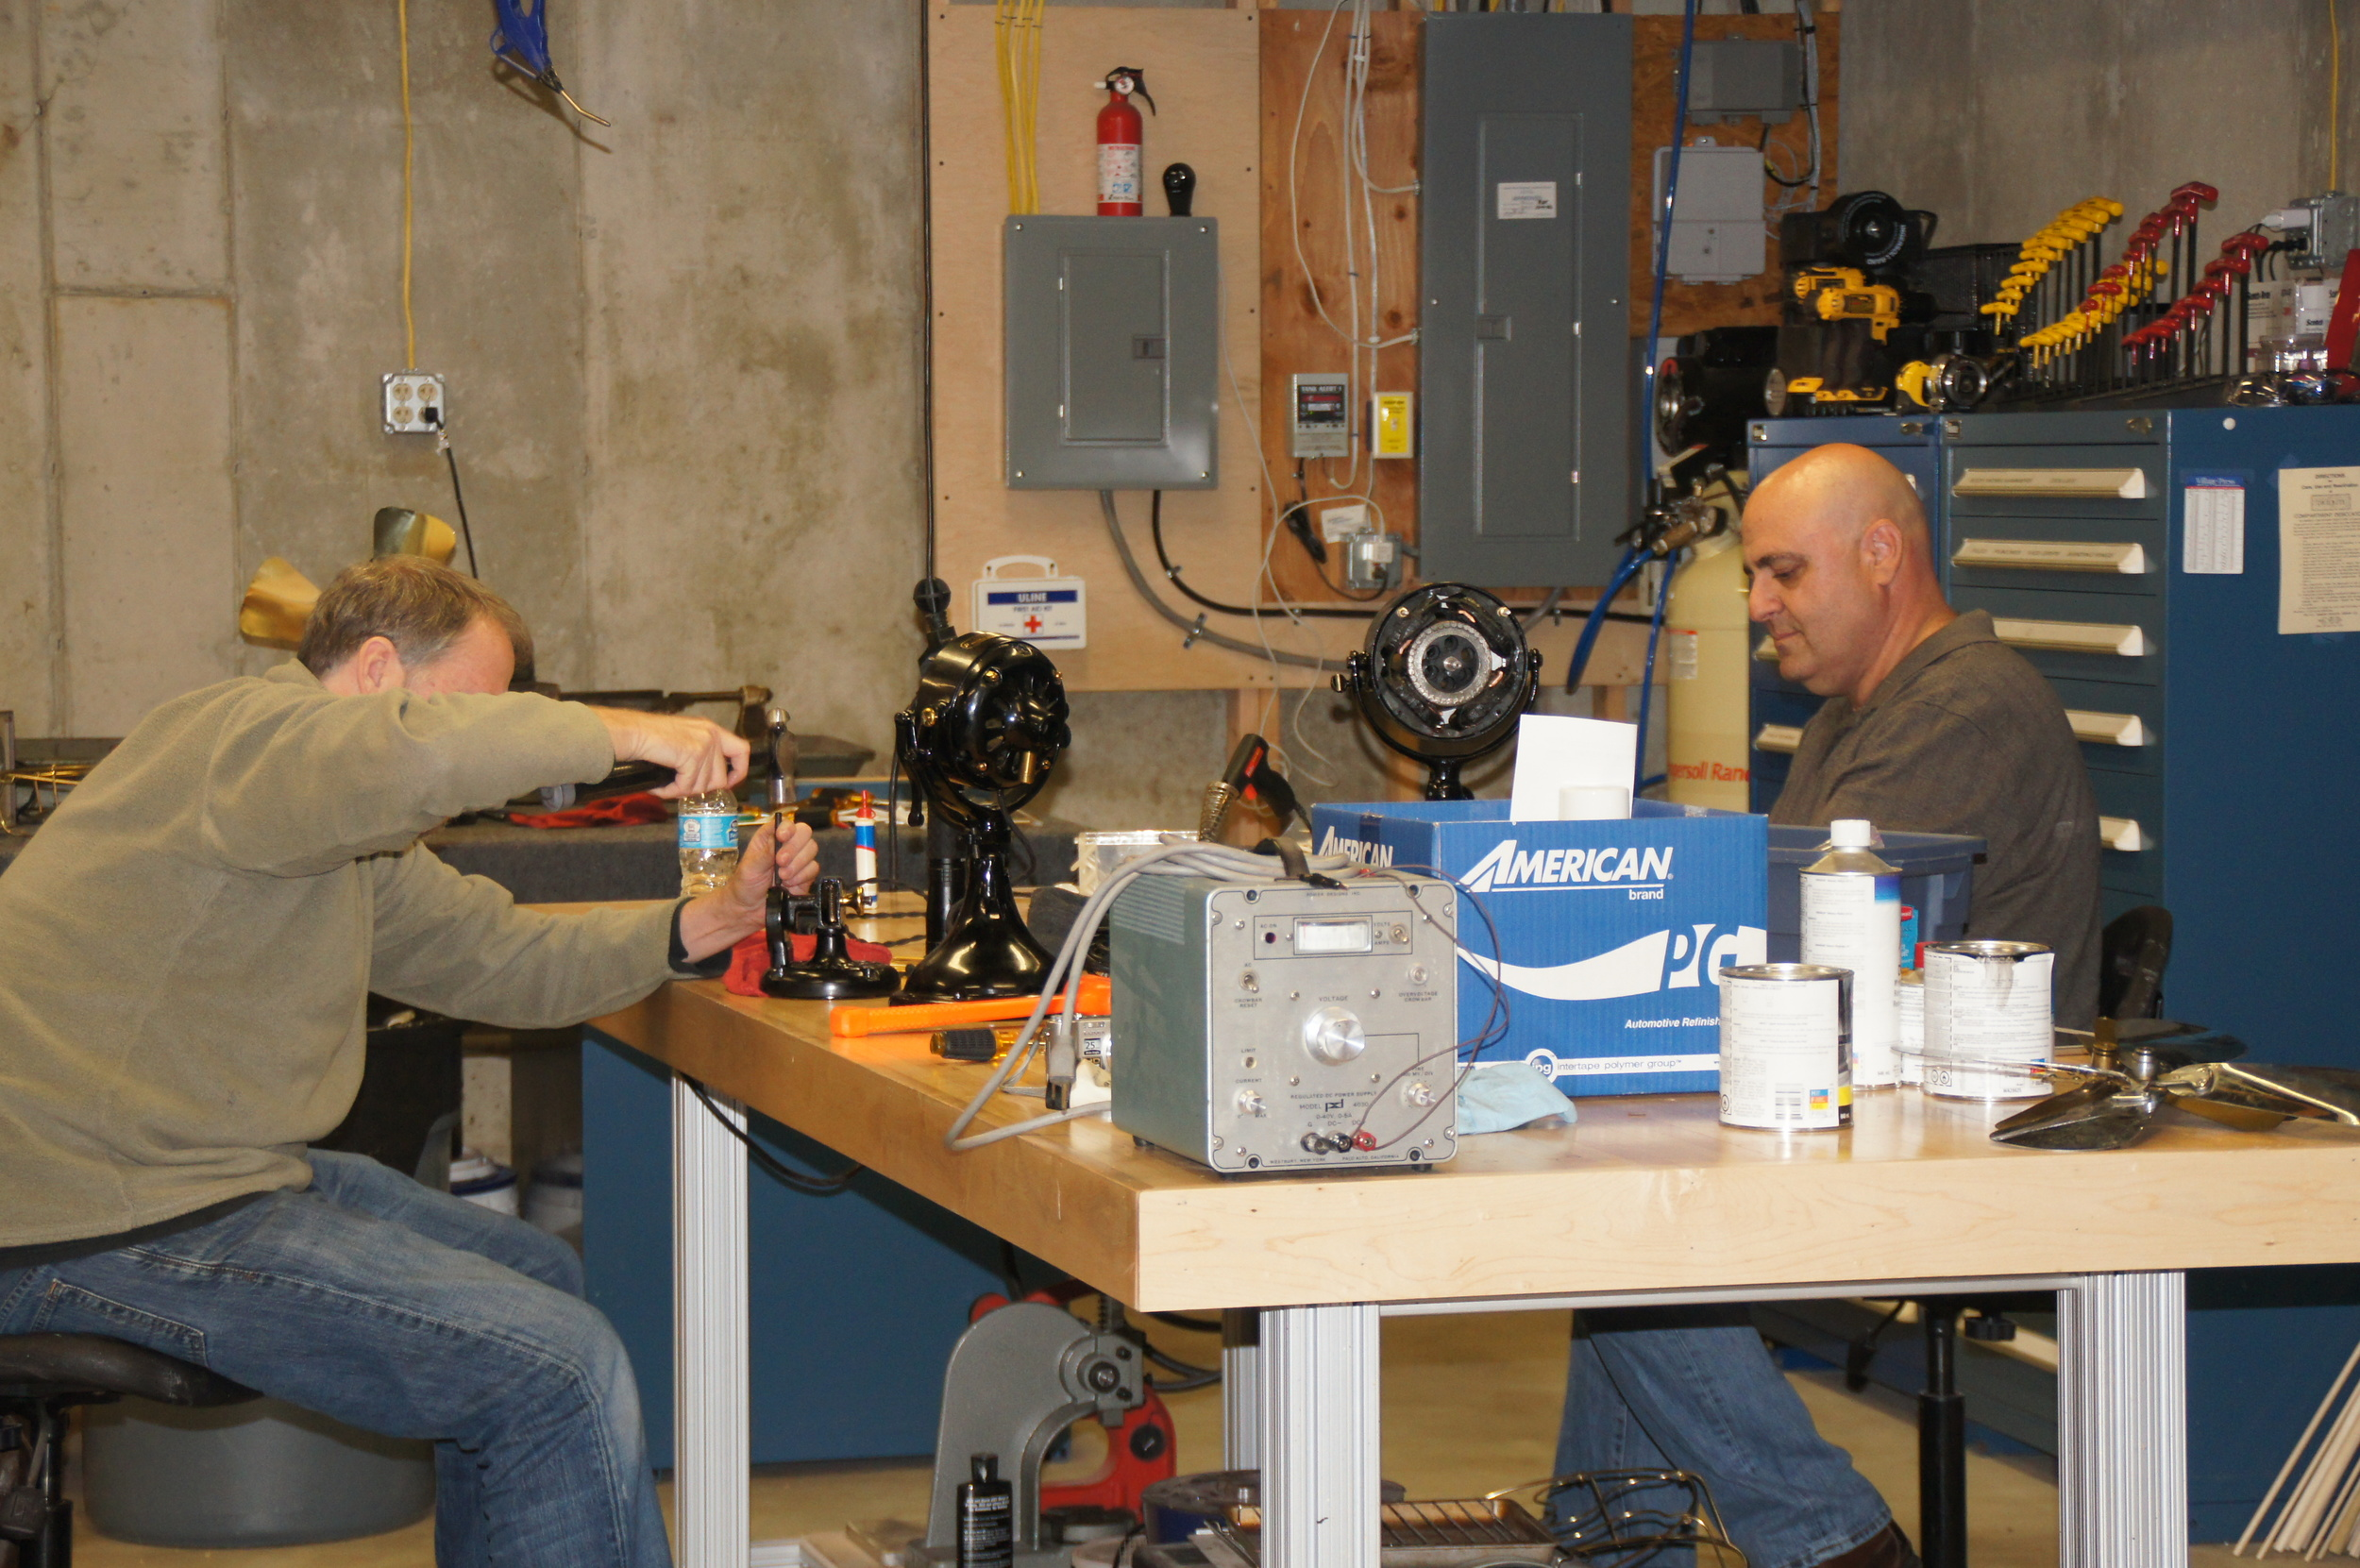 Steve Gilmore and Rich Becher hanging out and working on their fans in my shop.